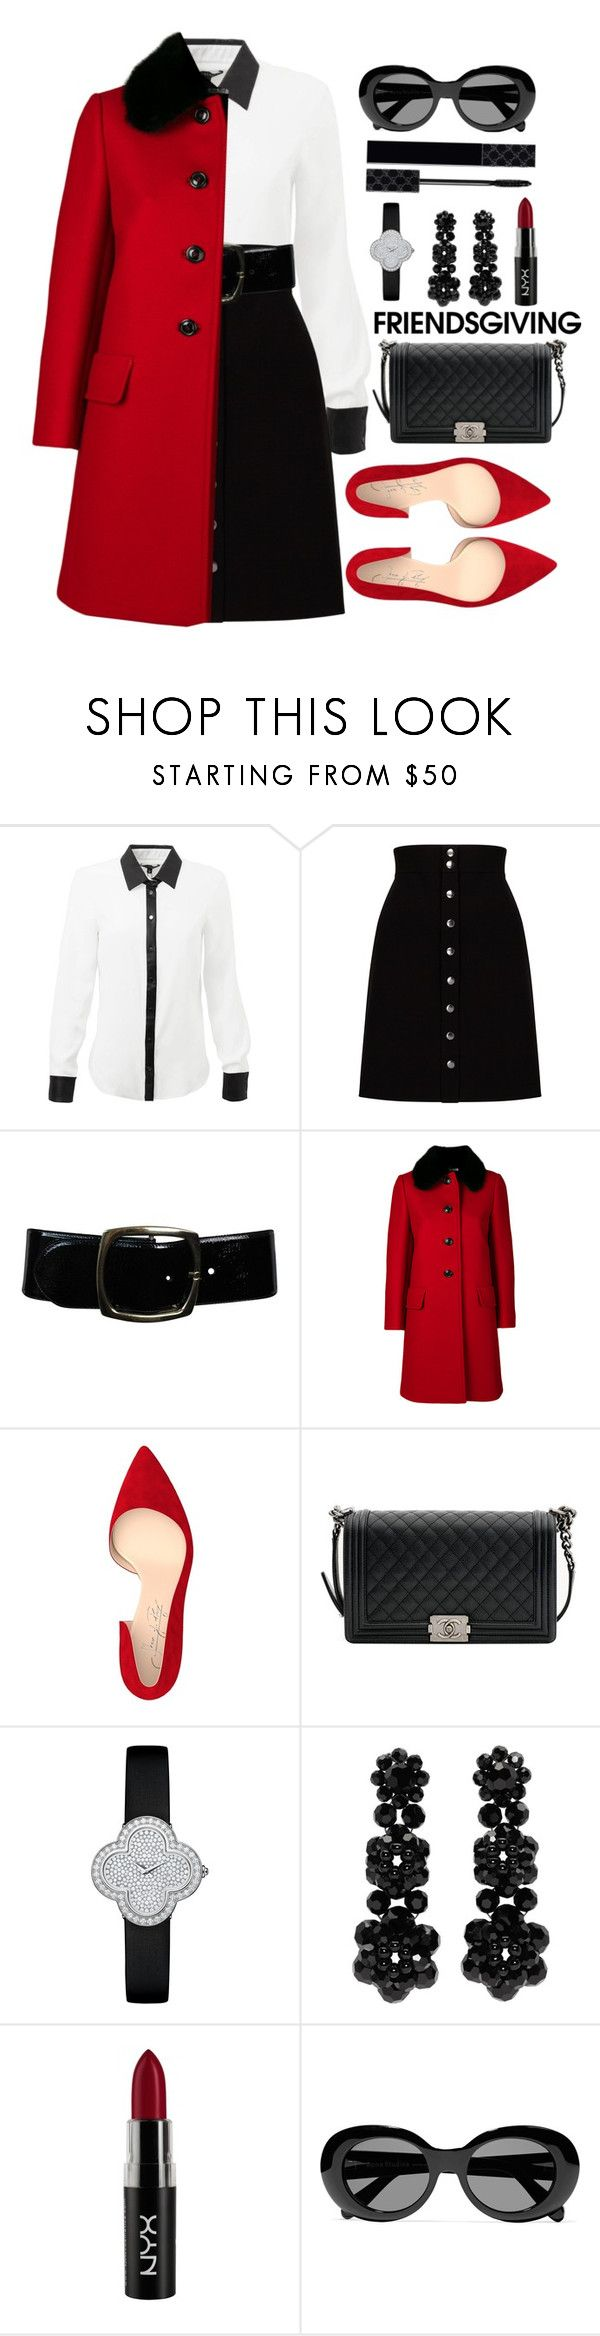 """""""Untitled #92"""" by berrylu ❤ liked on Polyvore featuring Phase Eight, Chanel, Miu Miu, Shoes of Prey, Van Cleef & Arpels, Simone Rocha, NYX, Acne Studios and Gucci"""